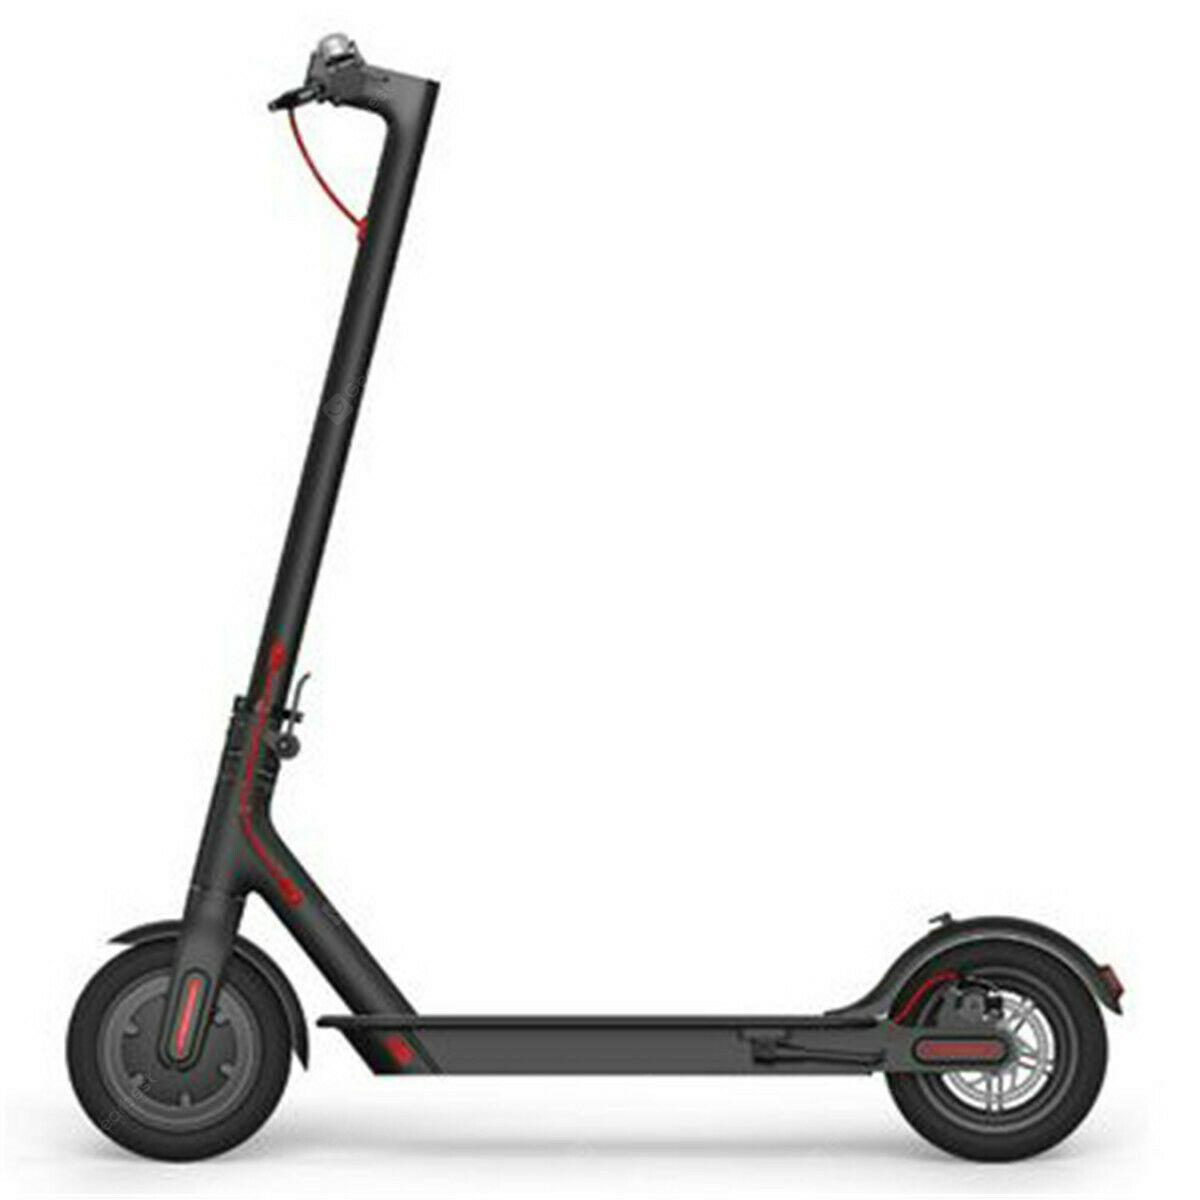 Original Xiaomi MI M365 Folding Electric Scooter - Black Poland ?entrep�t EU) 1%commissions